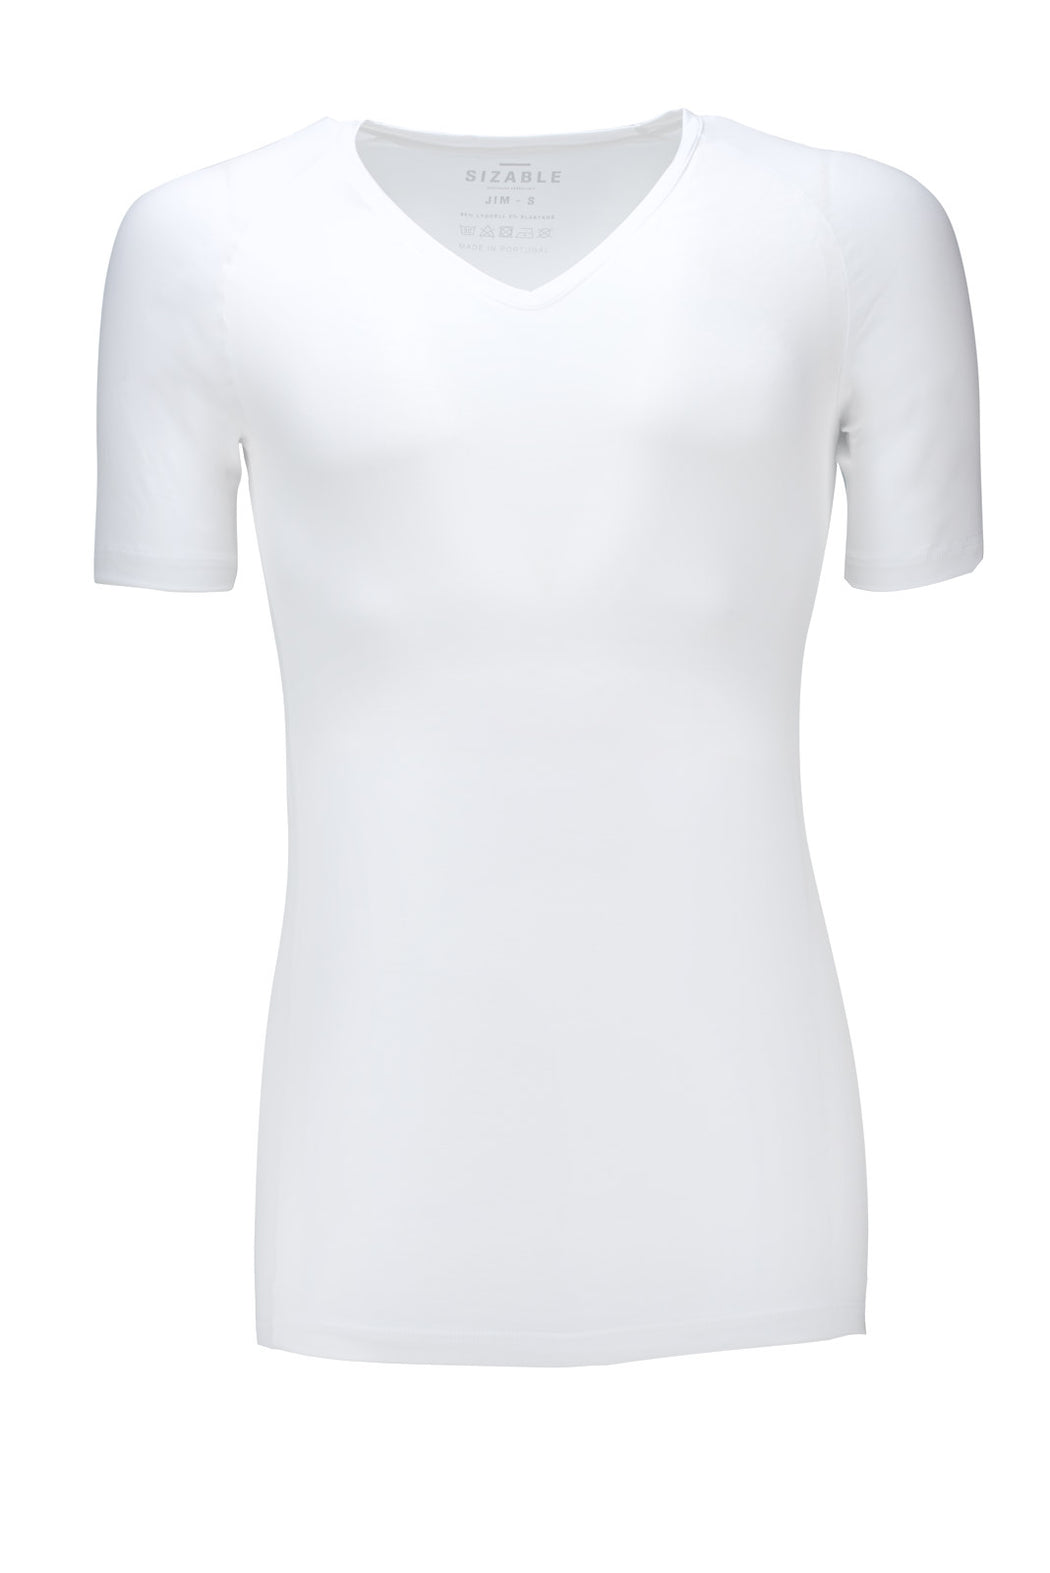 SIZABLE Jim Slim fit V-neck undershirt white